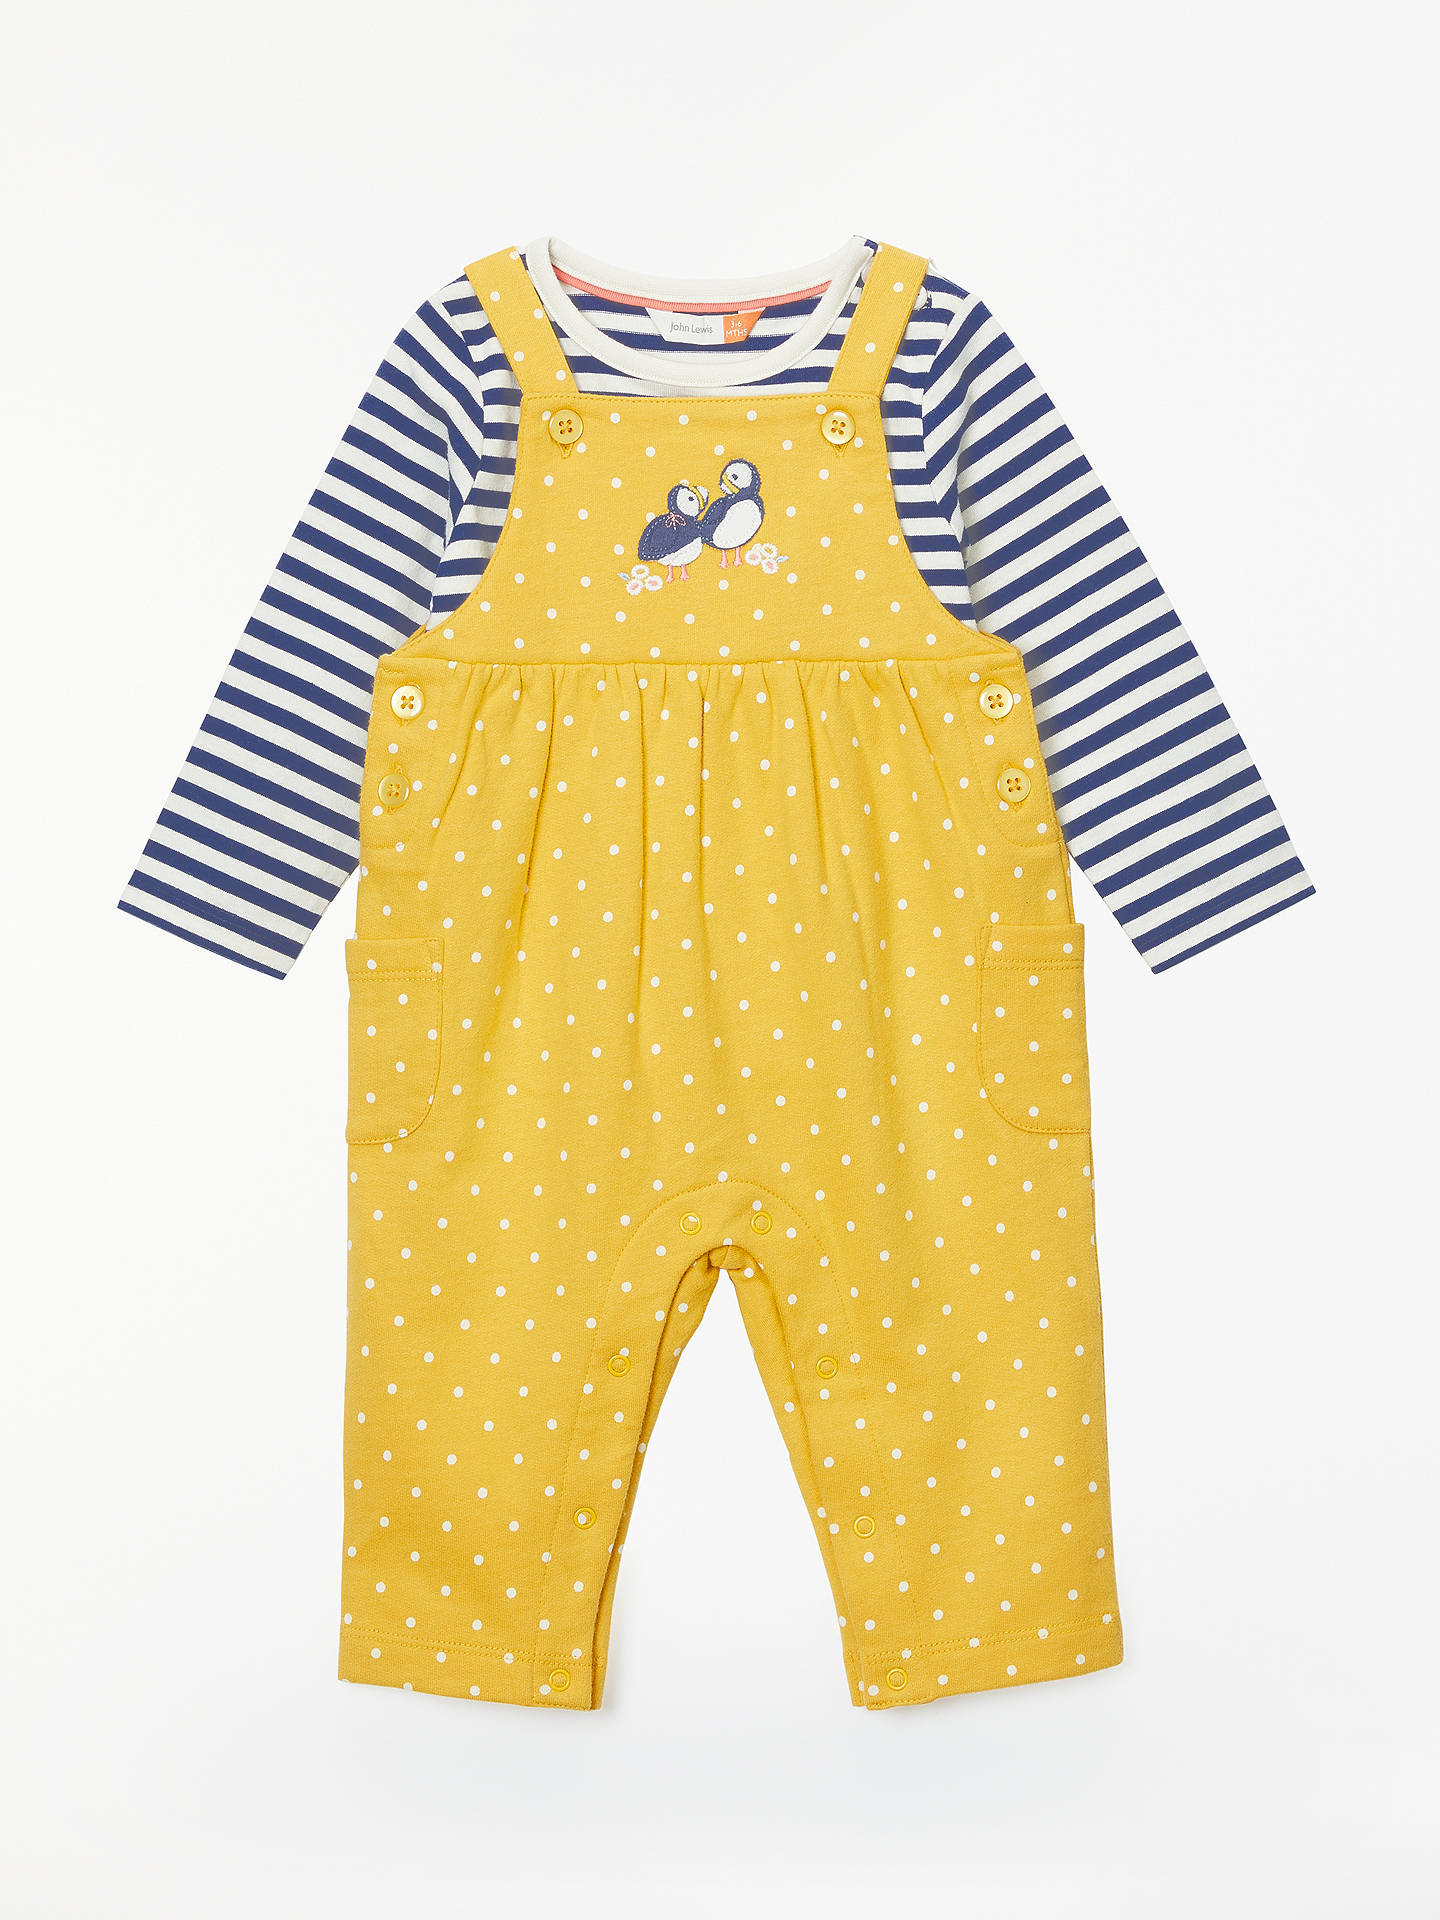 3cae42abf65f John Lewis   Partners Baby Puffin Dungaree and T-Shirt Set